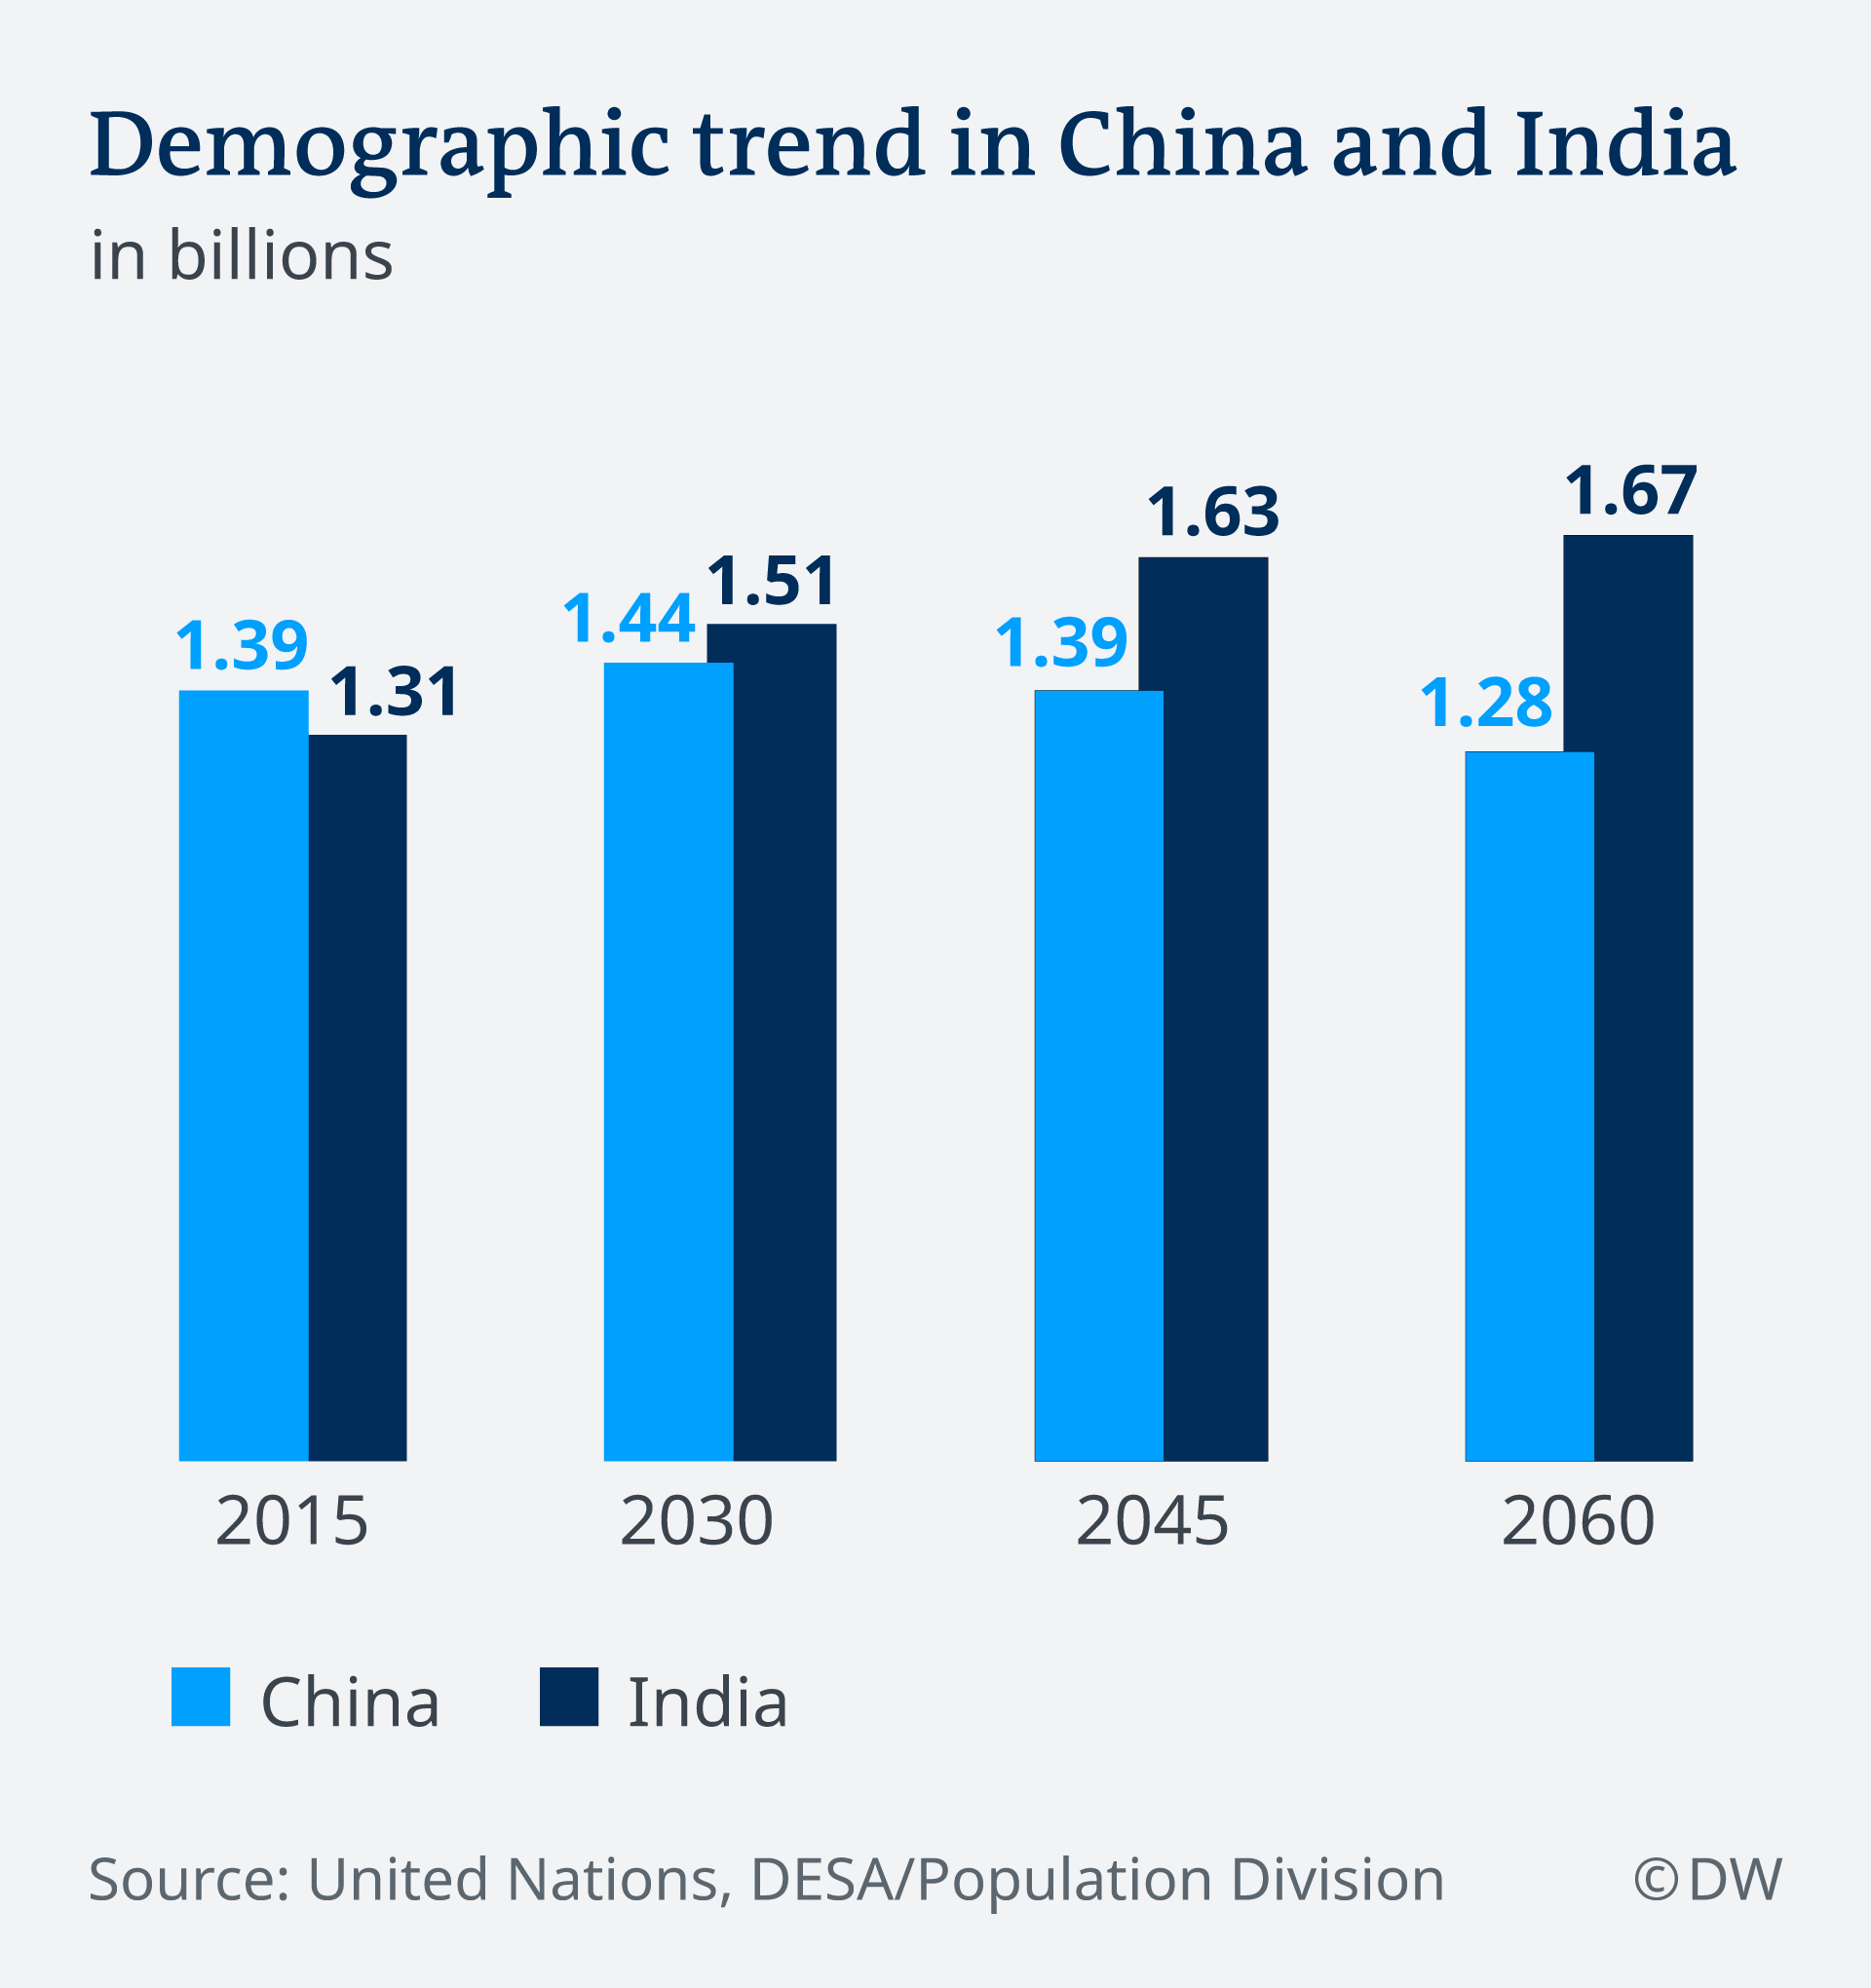 A bar chart showing the 2015 total populations of China and India, plus projections for 2030, 2045 and 2060.